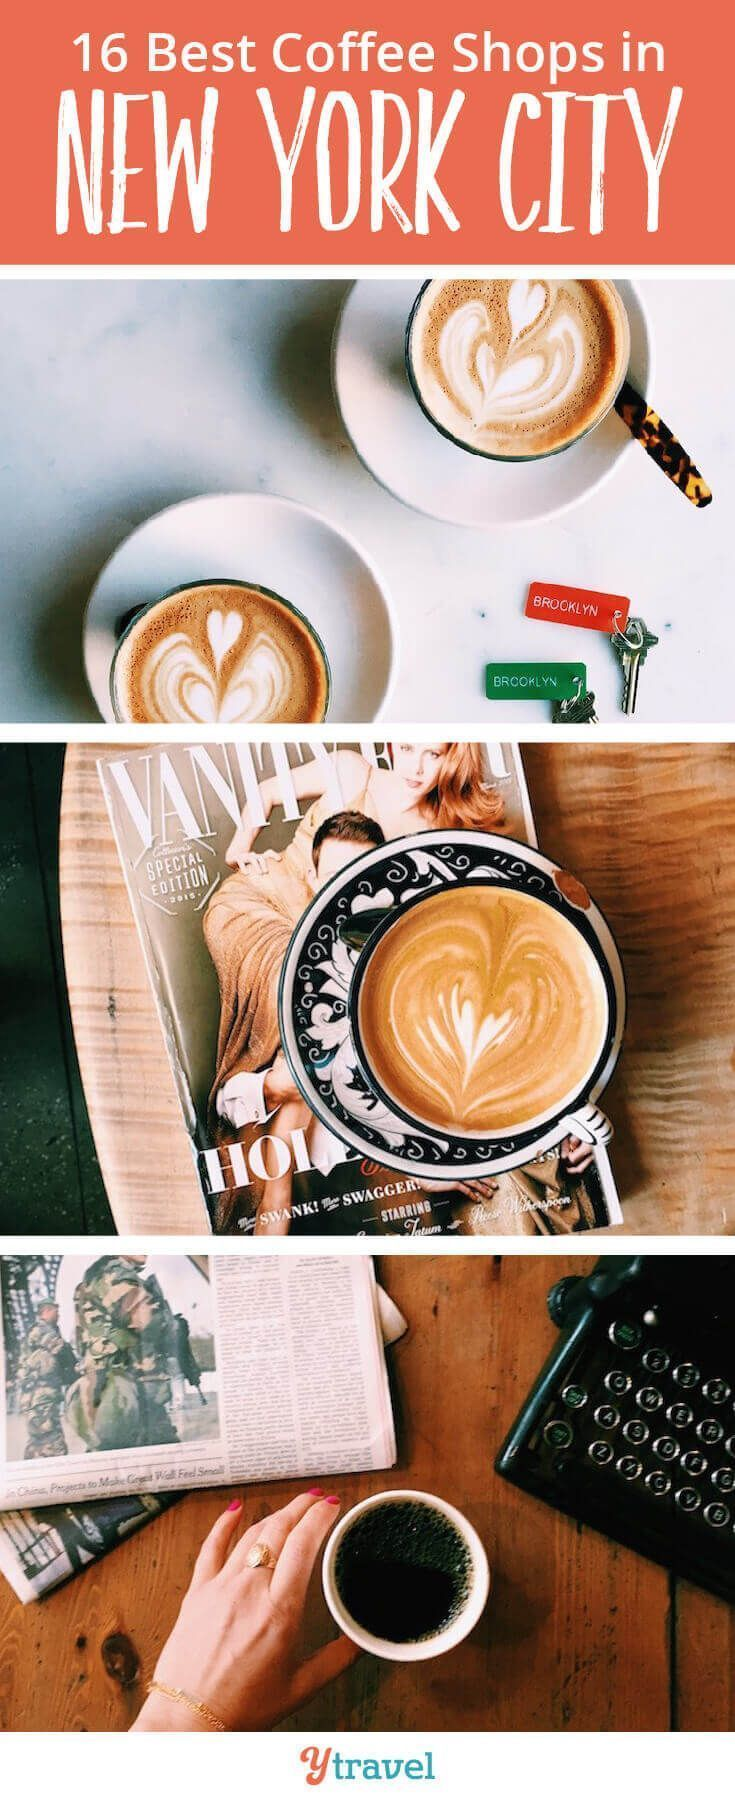 16 Best Coffee Shops in NYC the Locals Love